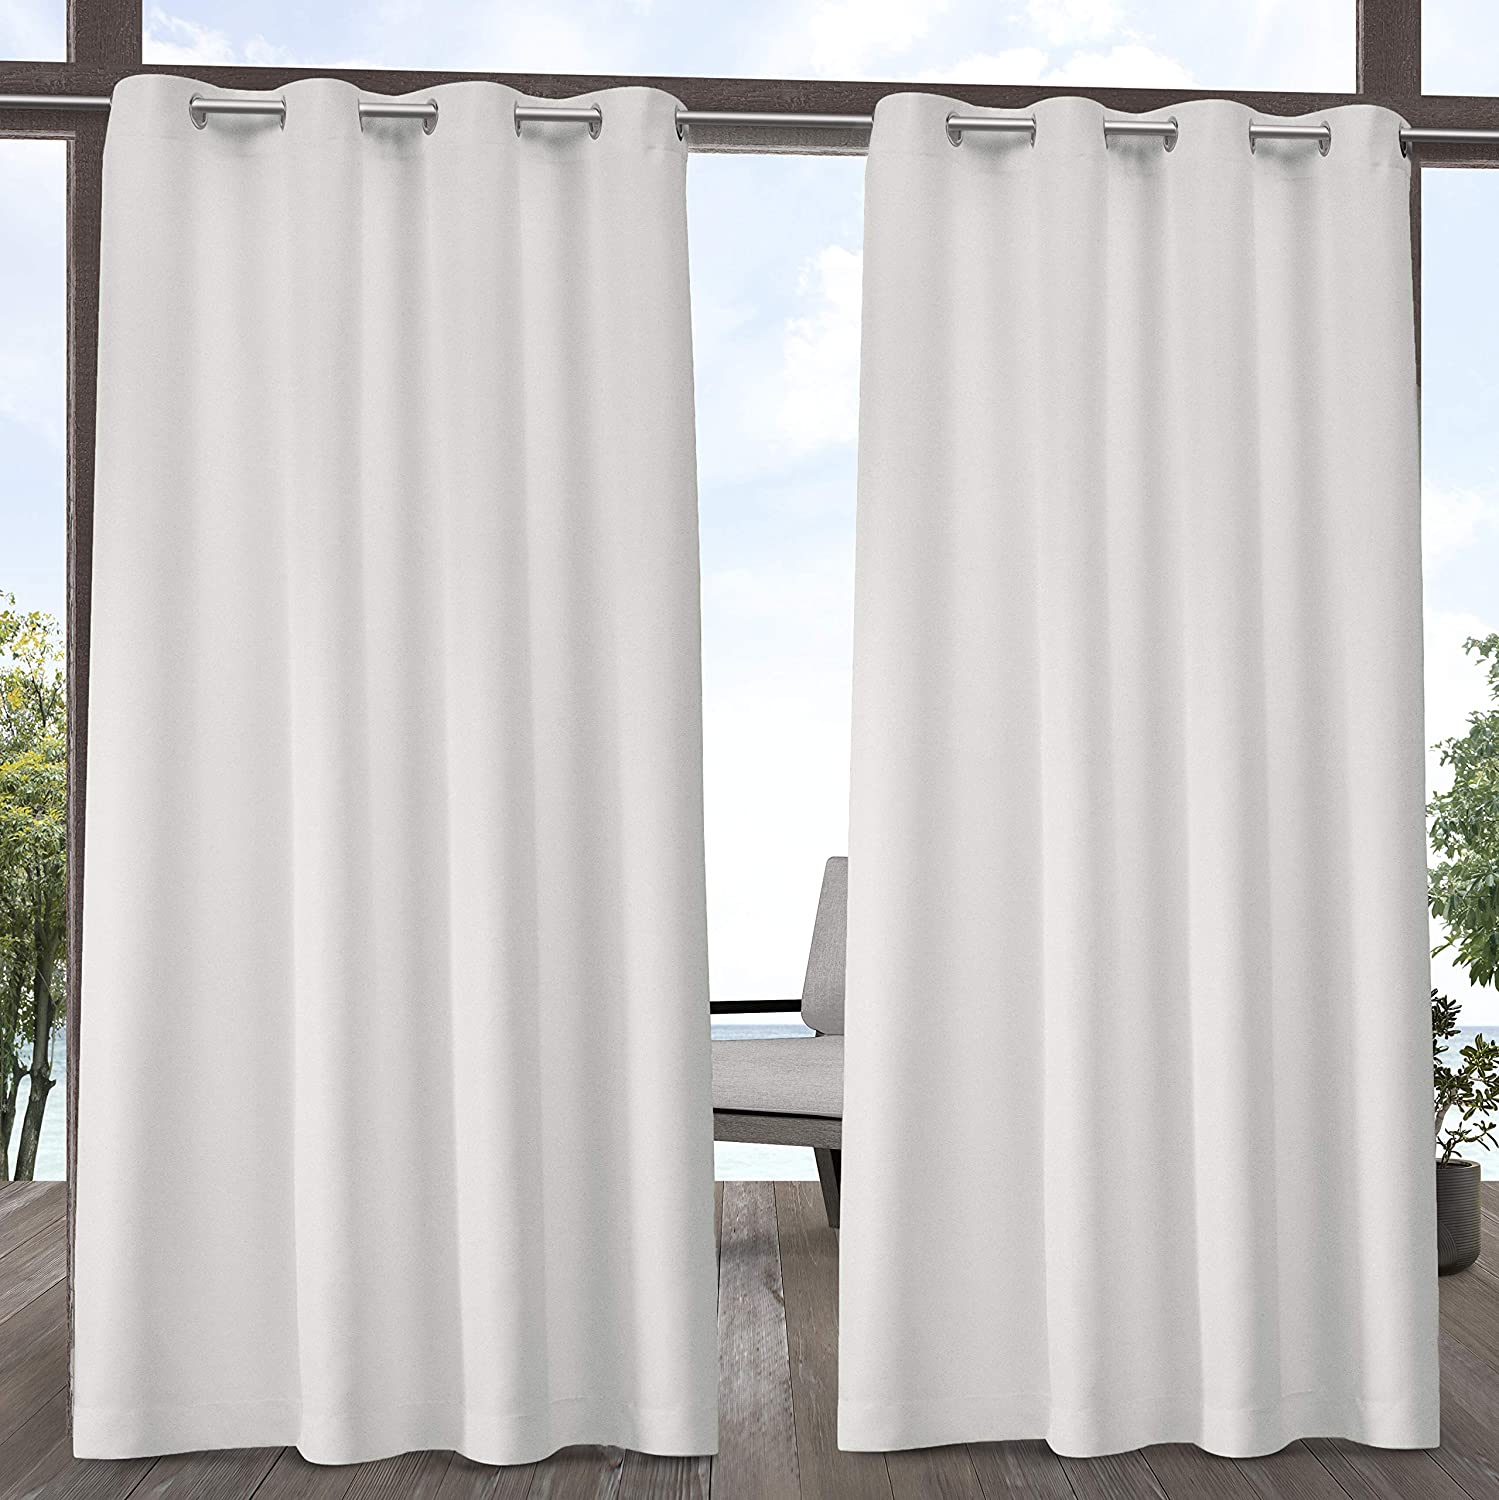 High material Max 54% OFF Exclusive Home Curtains In-Out Solid Cabana GT Top Grommet Curta